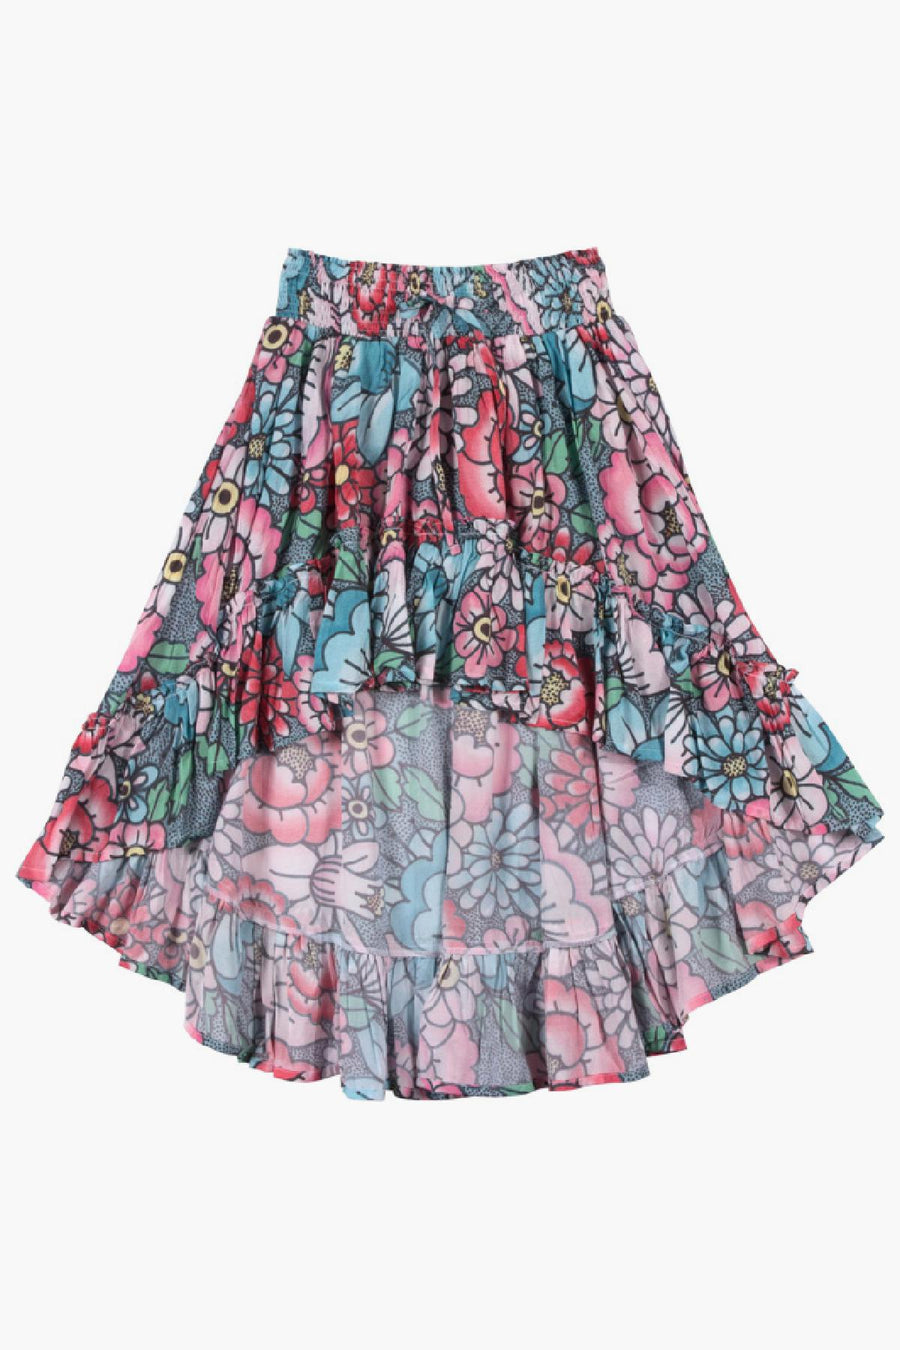 bd236e2af5 Girls Skirts | Kids Clothes - Mini Ruby Contemporary Childrenswear